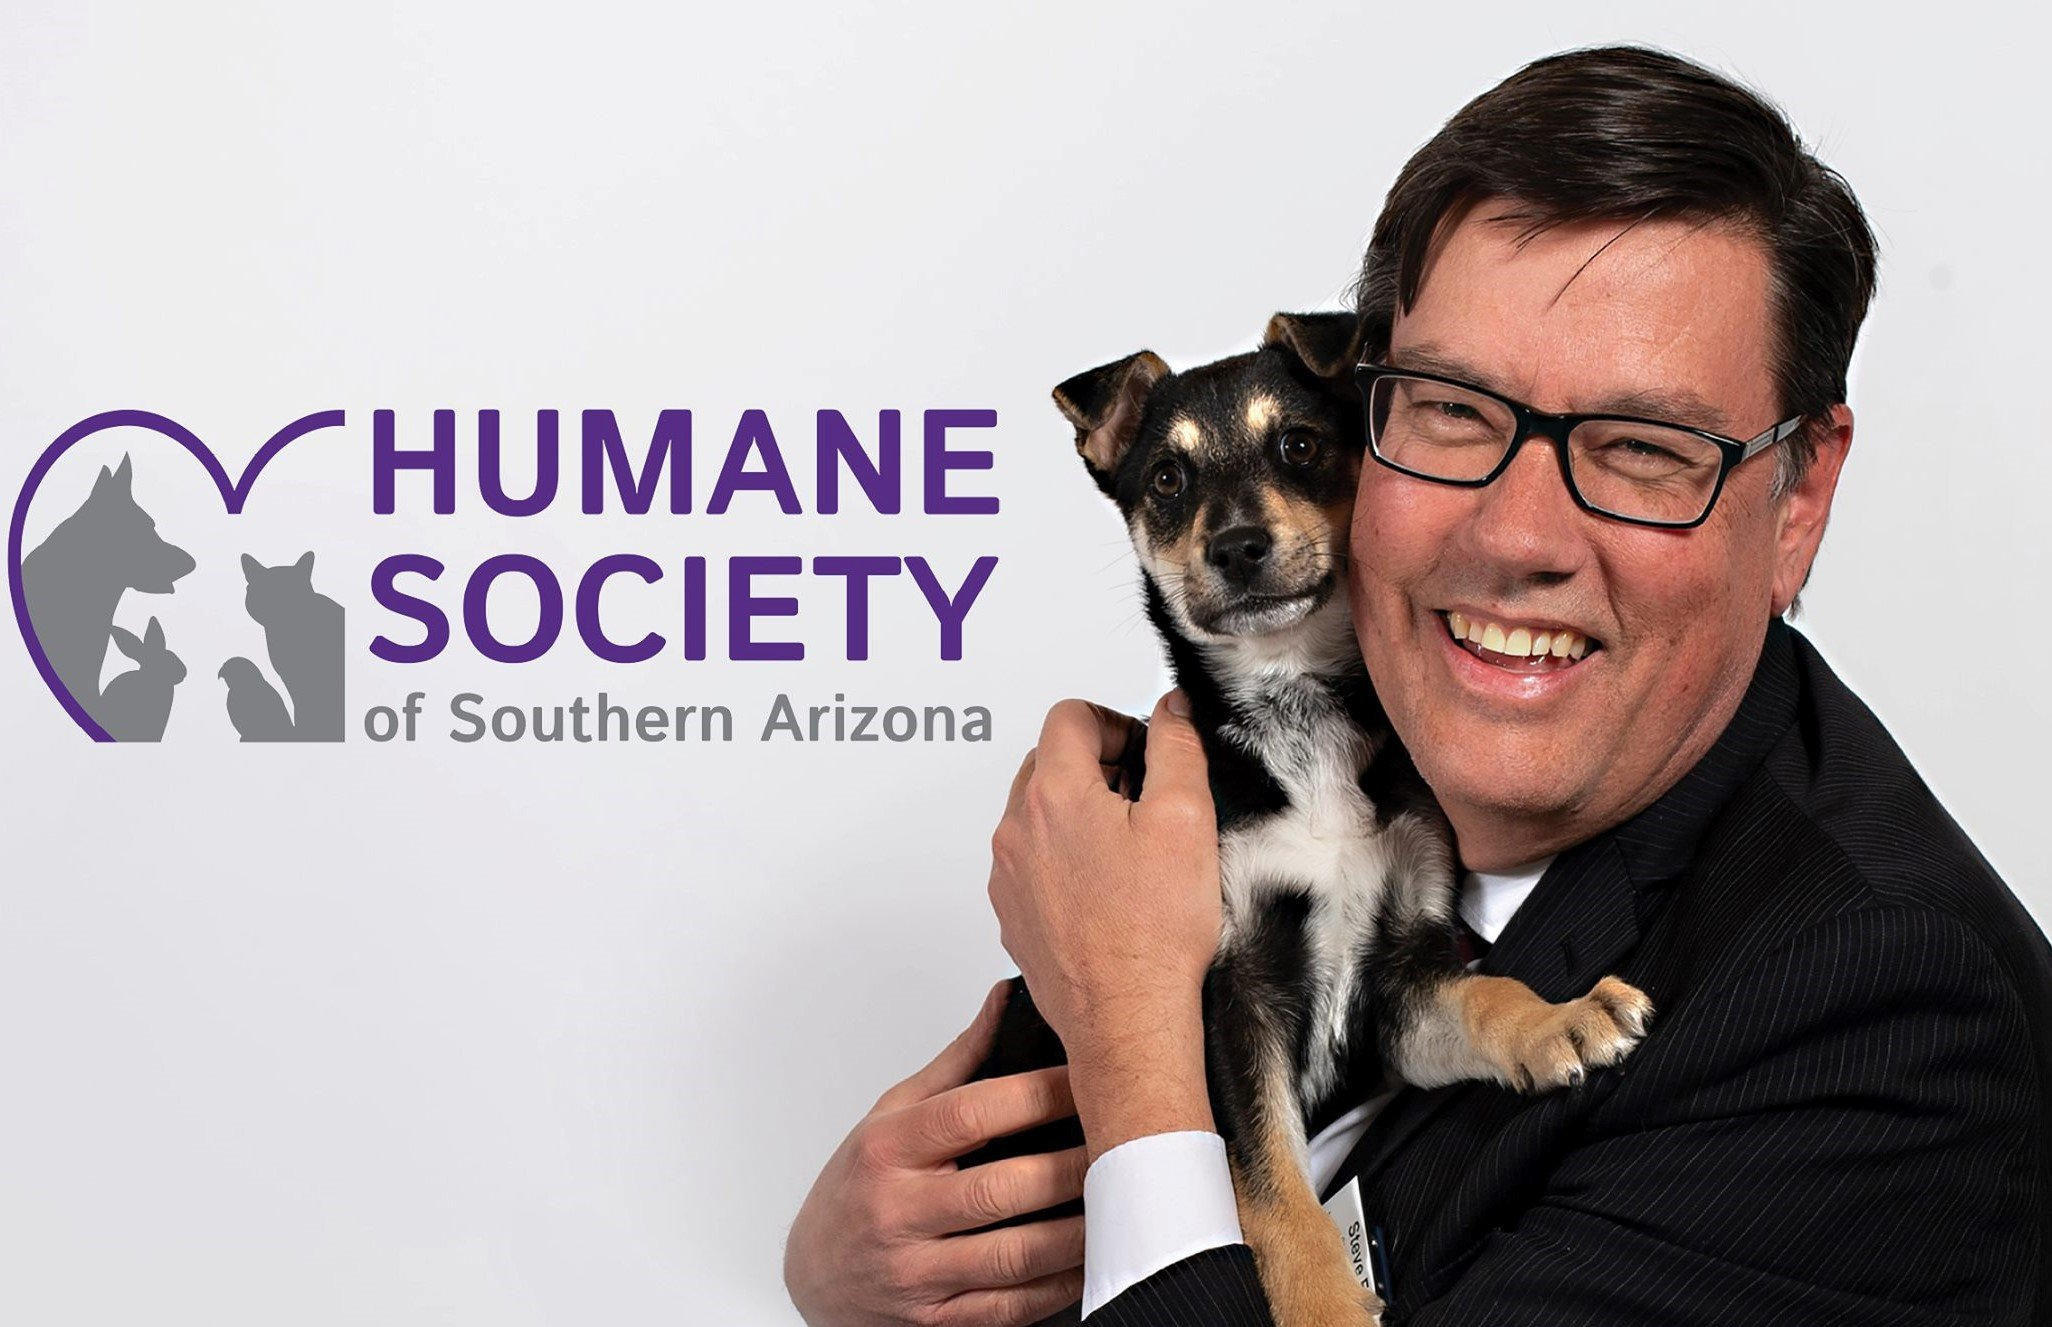 Steve Farley Helps Homeless Pets as CEO of the Humane Society